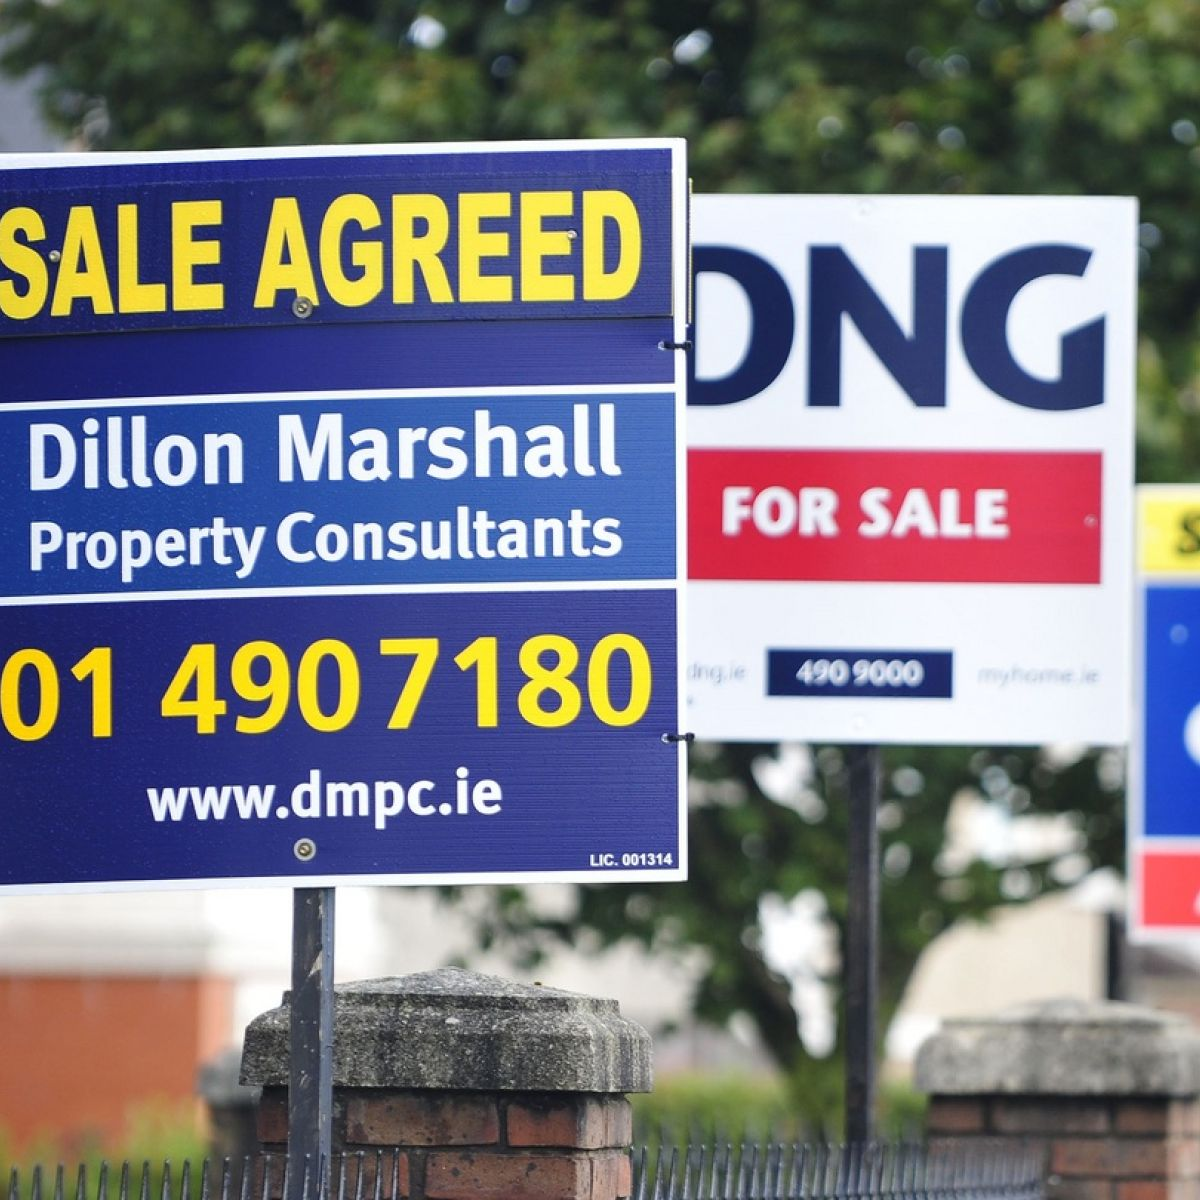 Hard Brexit could hit Irish house prices, Central Bank warns